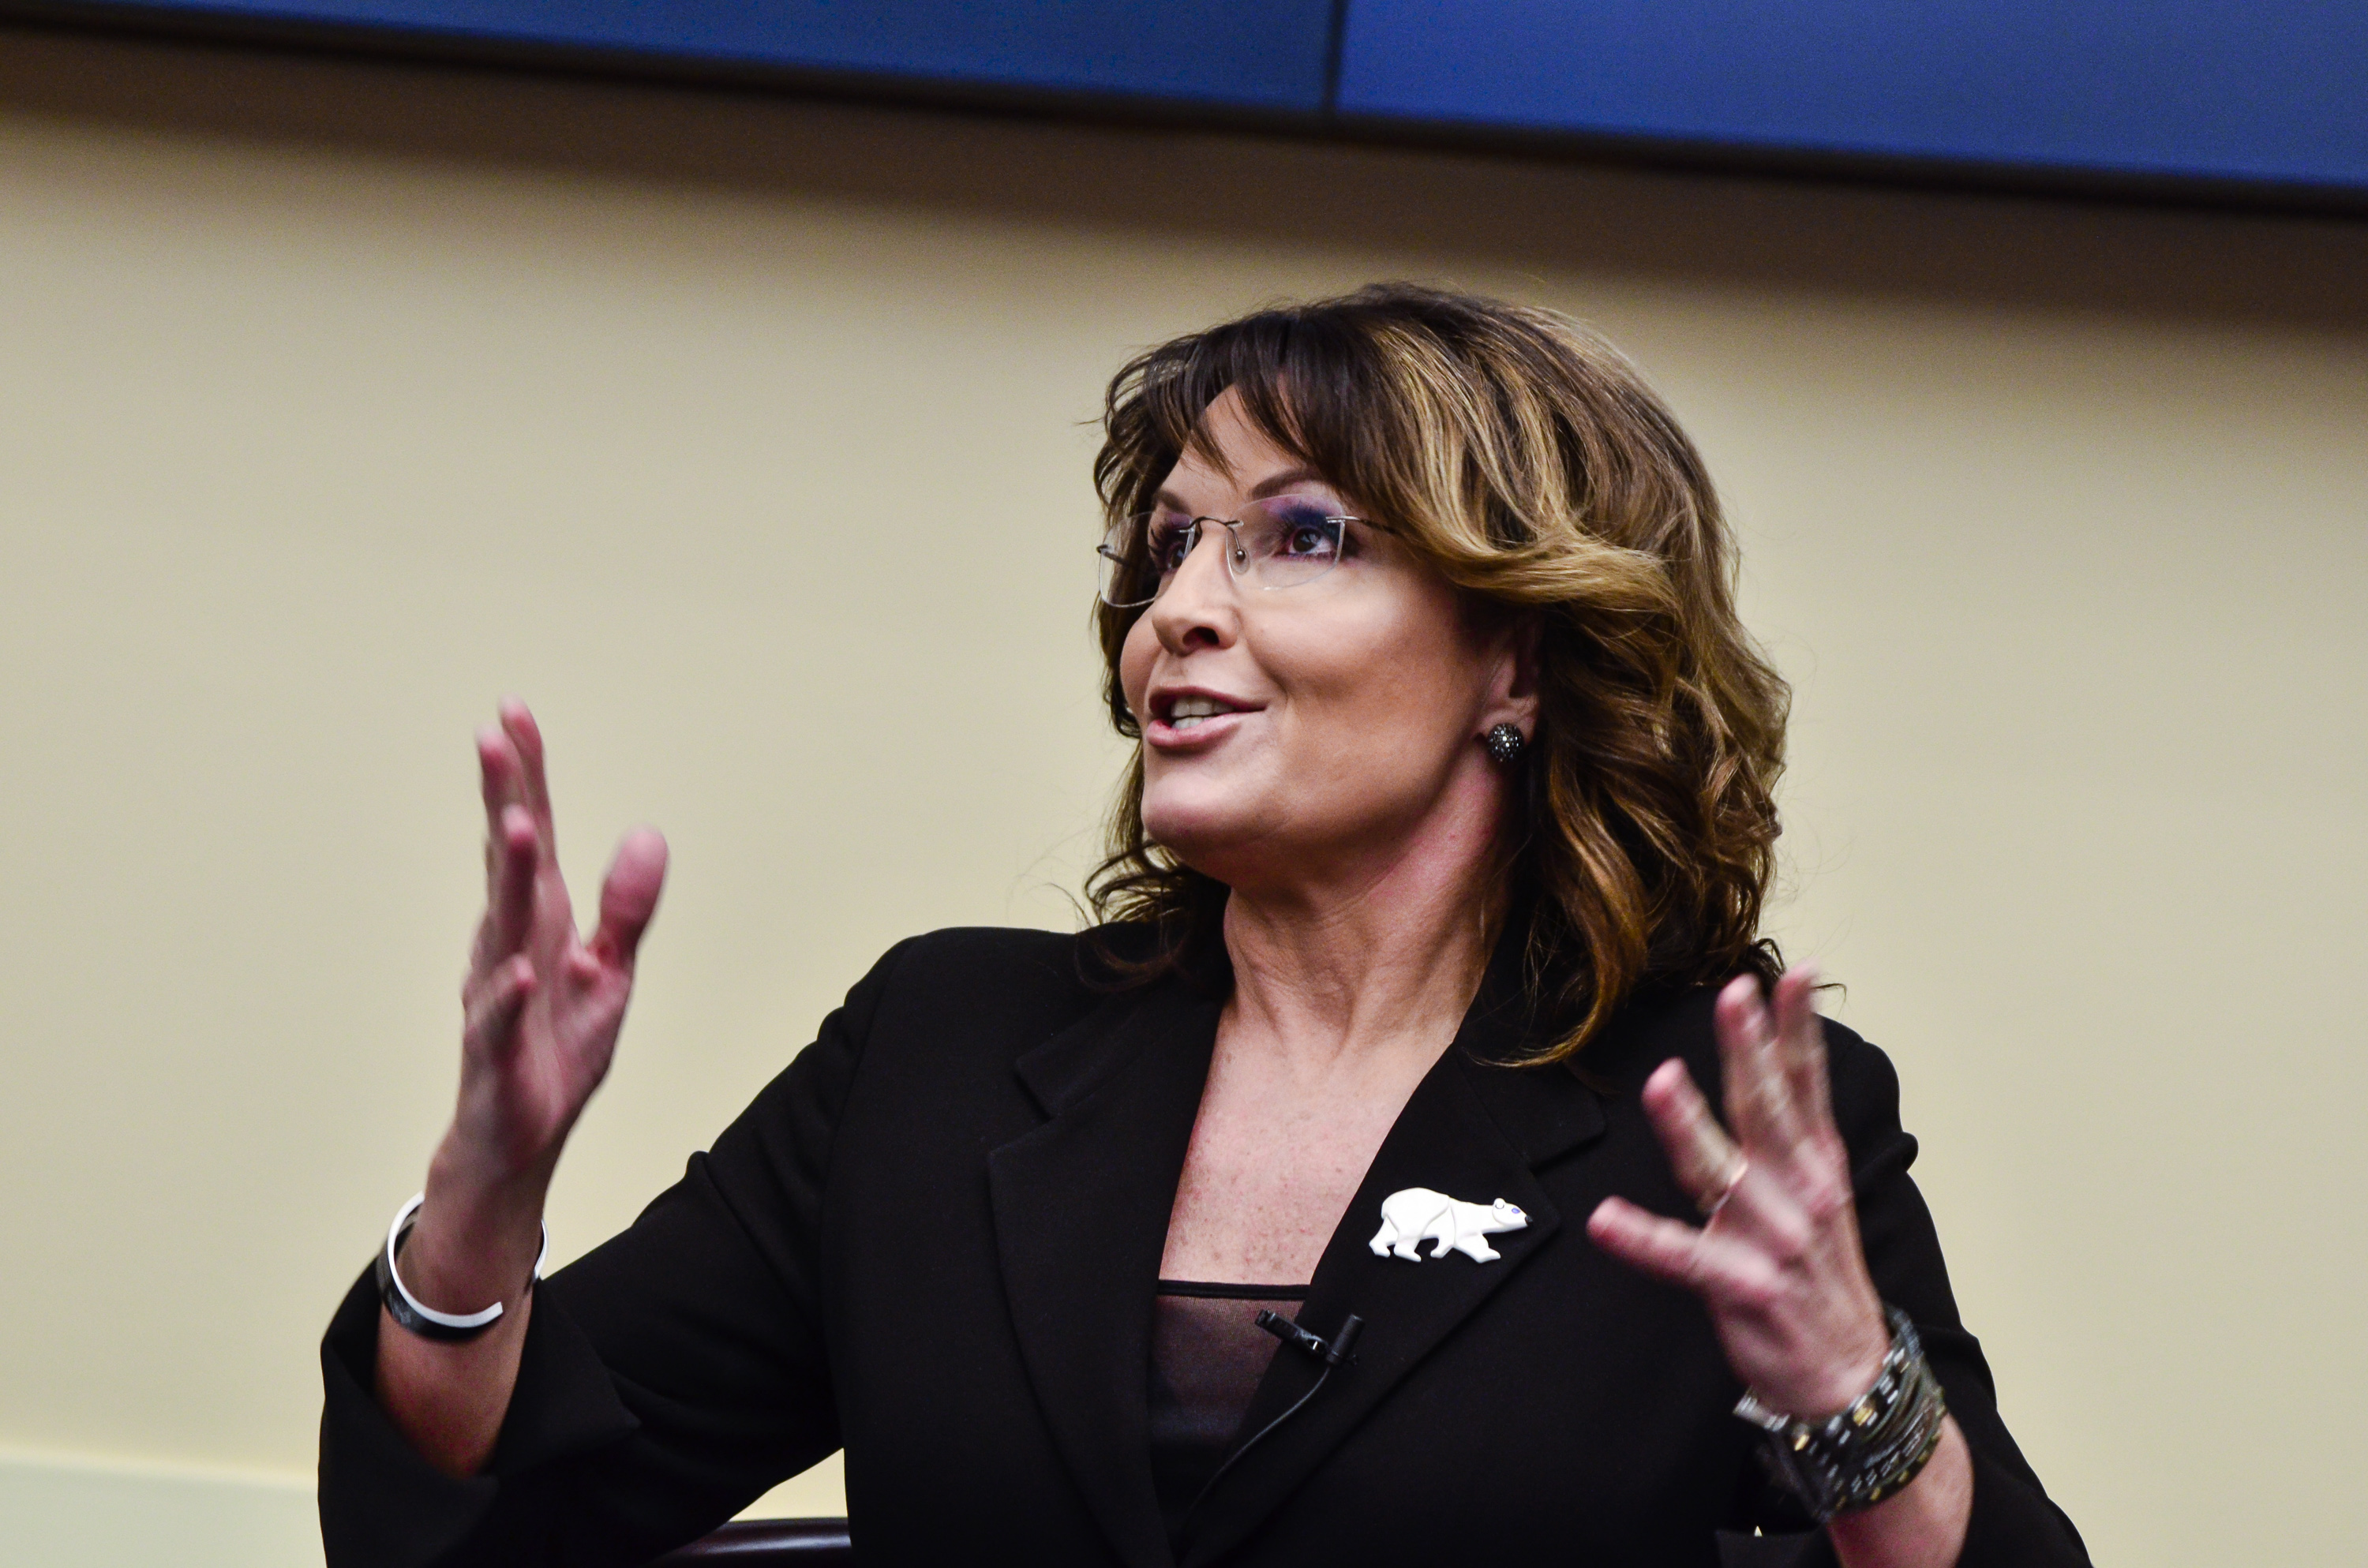 WASHINGTON, DC - APRIL 14: Former Governor Sarah Palin speaks during the  Climate Hustle  panel discussion at the Rayburn House Office Building on April 14, 2016 in Washington, DC. (Kris Connor/Getty Images)